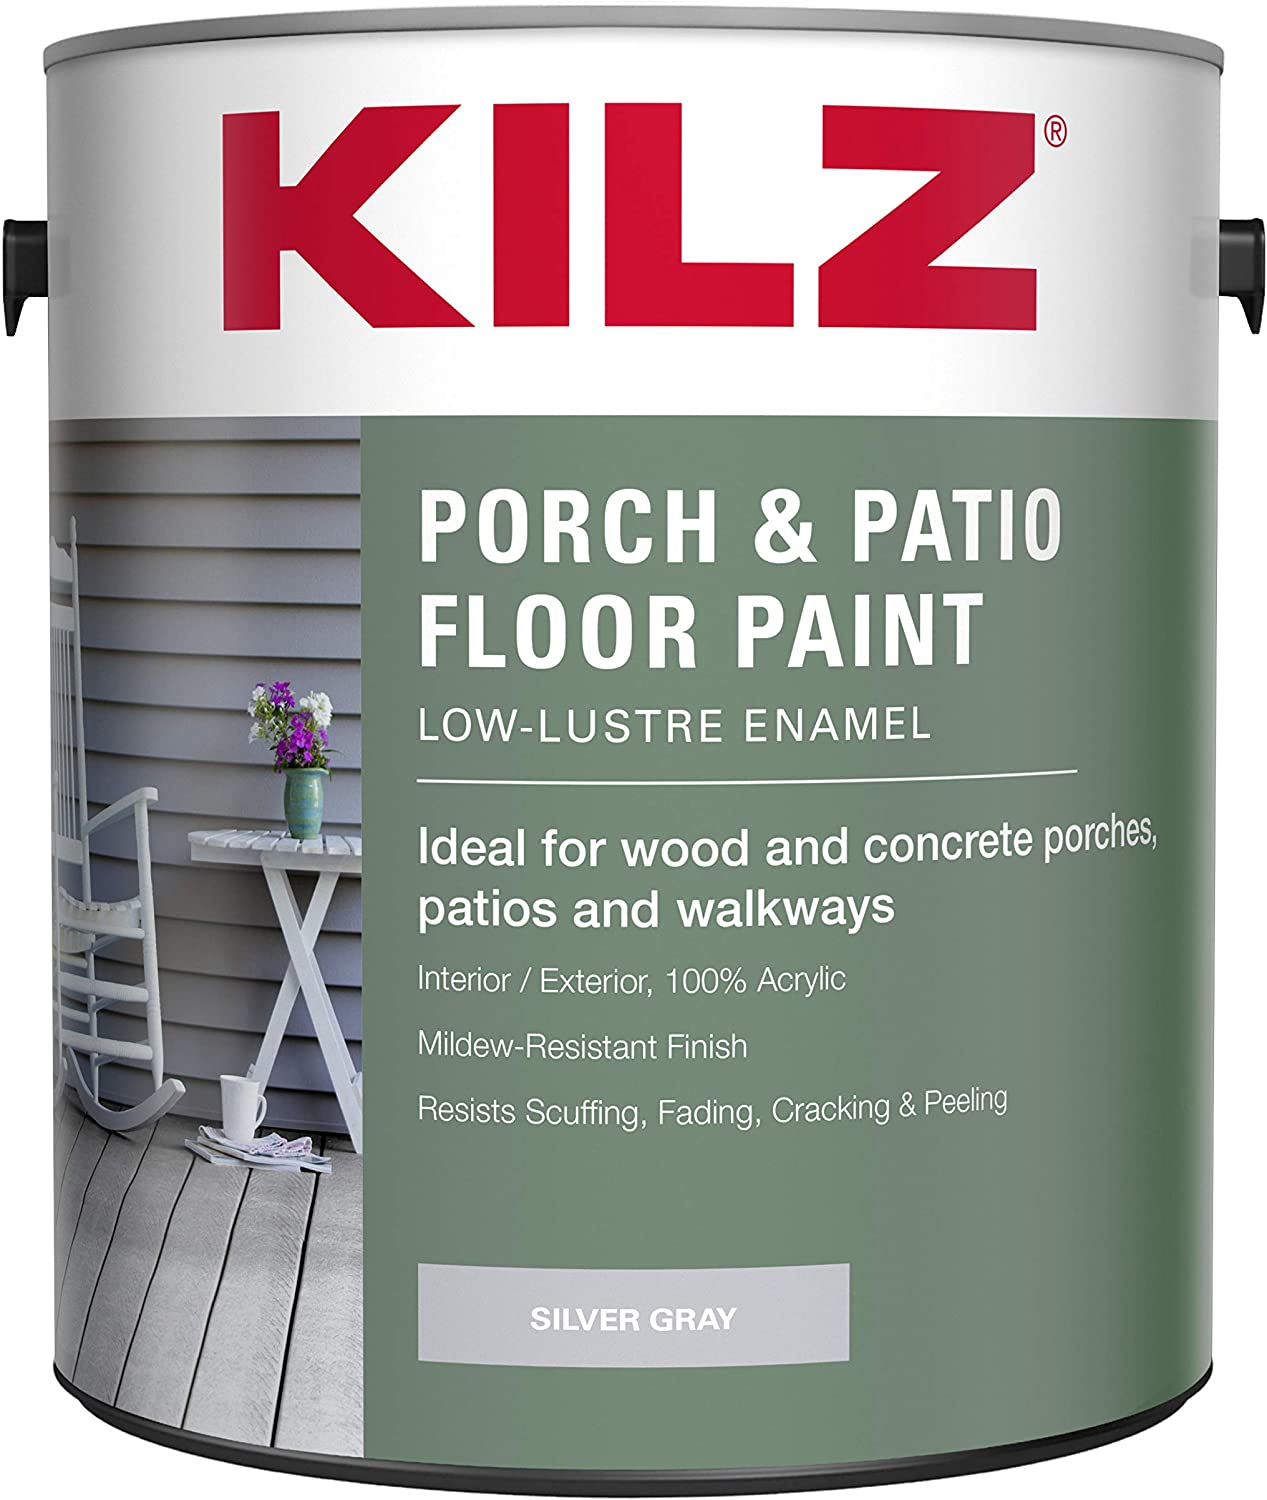 Top 8 Best Deck Paints for Old Decks [Buying Guide] 2